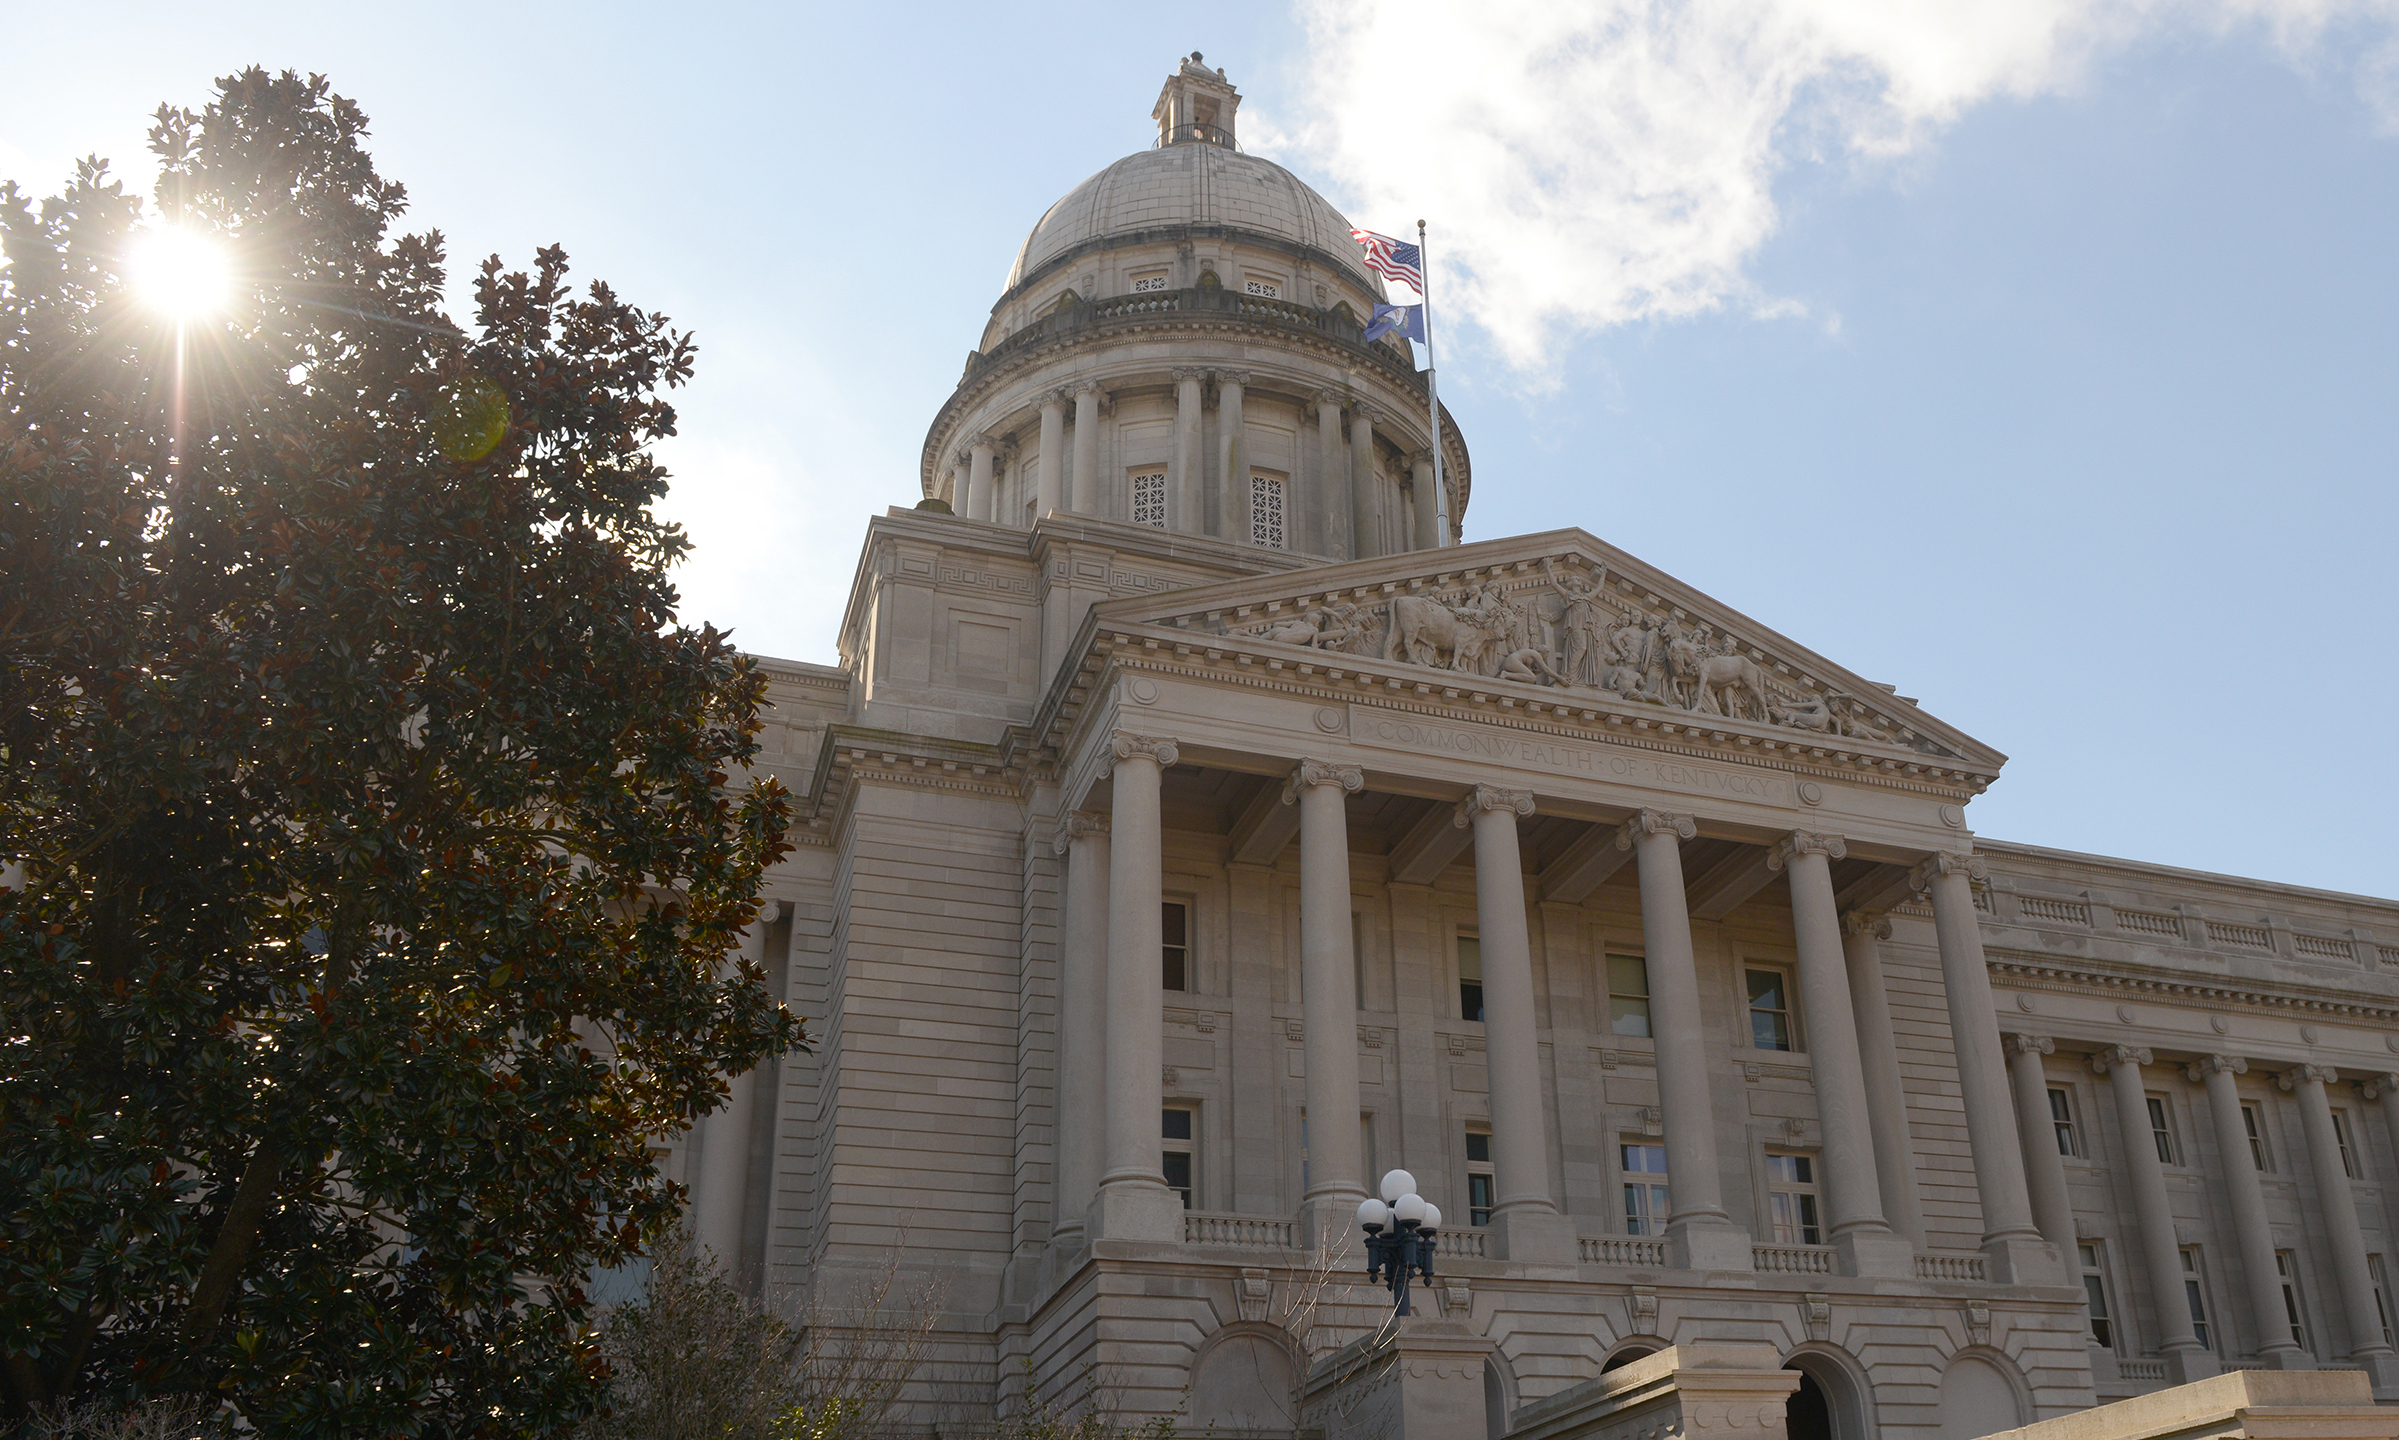 Kentucky Capitol Building in Frankfort